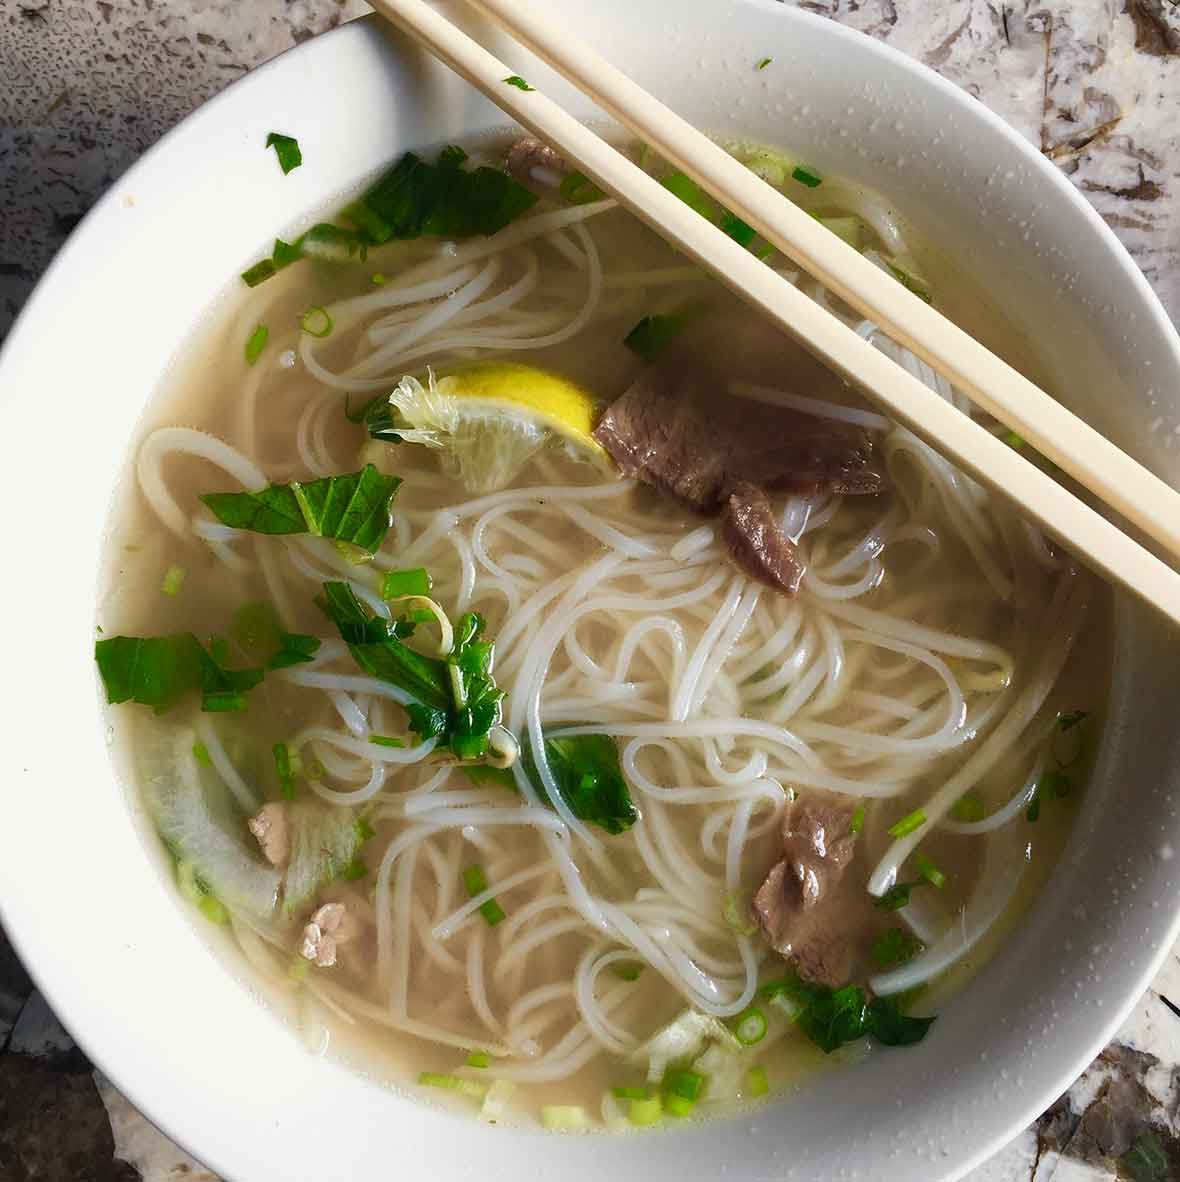 A bowl of authentic Vietnamese pho with rice noodles, beef, lemon, basil, and scallions in it and a pair of chopsticks resting on top of the bowl.